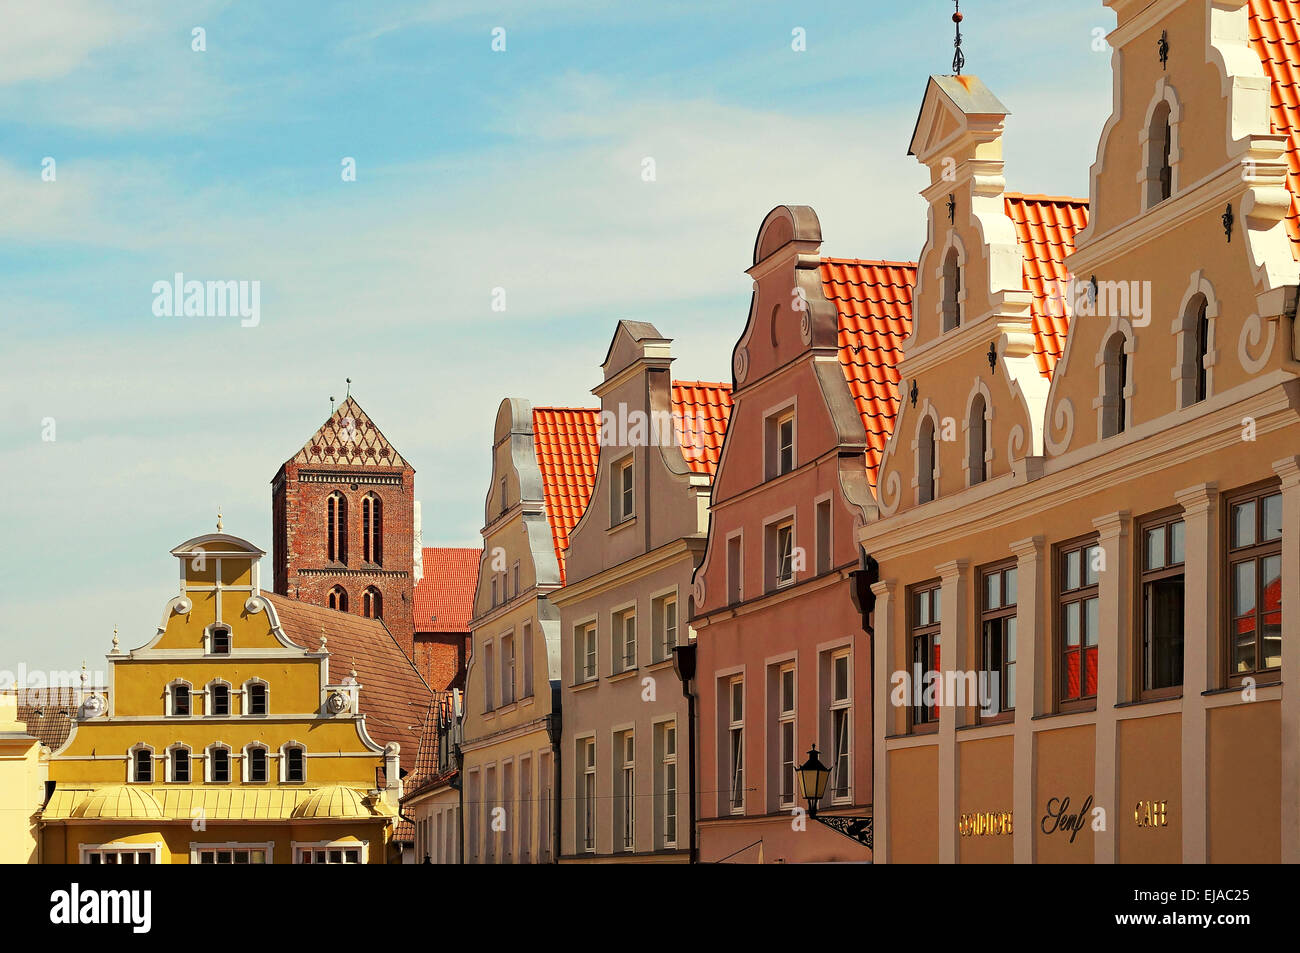 Hanseatic City Wismar Germany - Stock Image